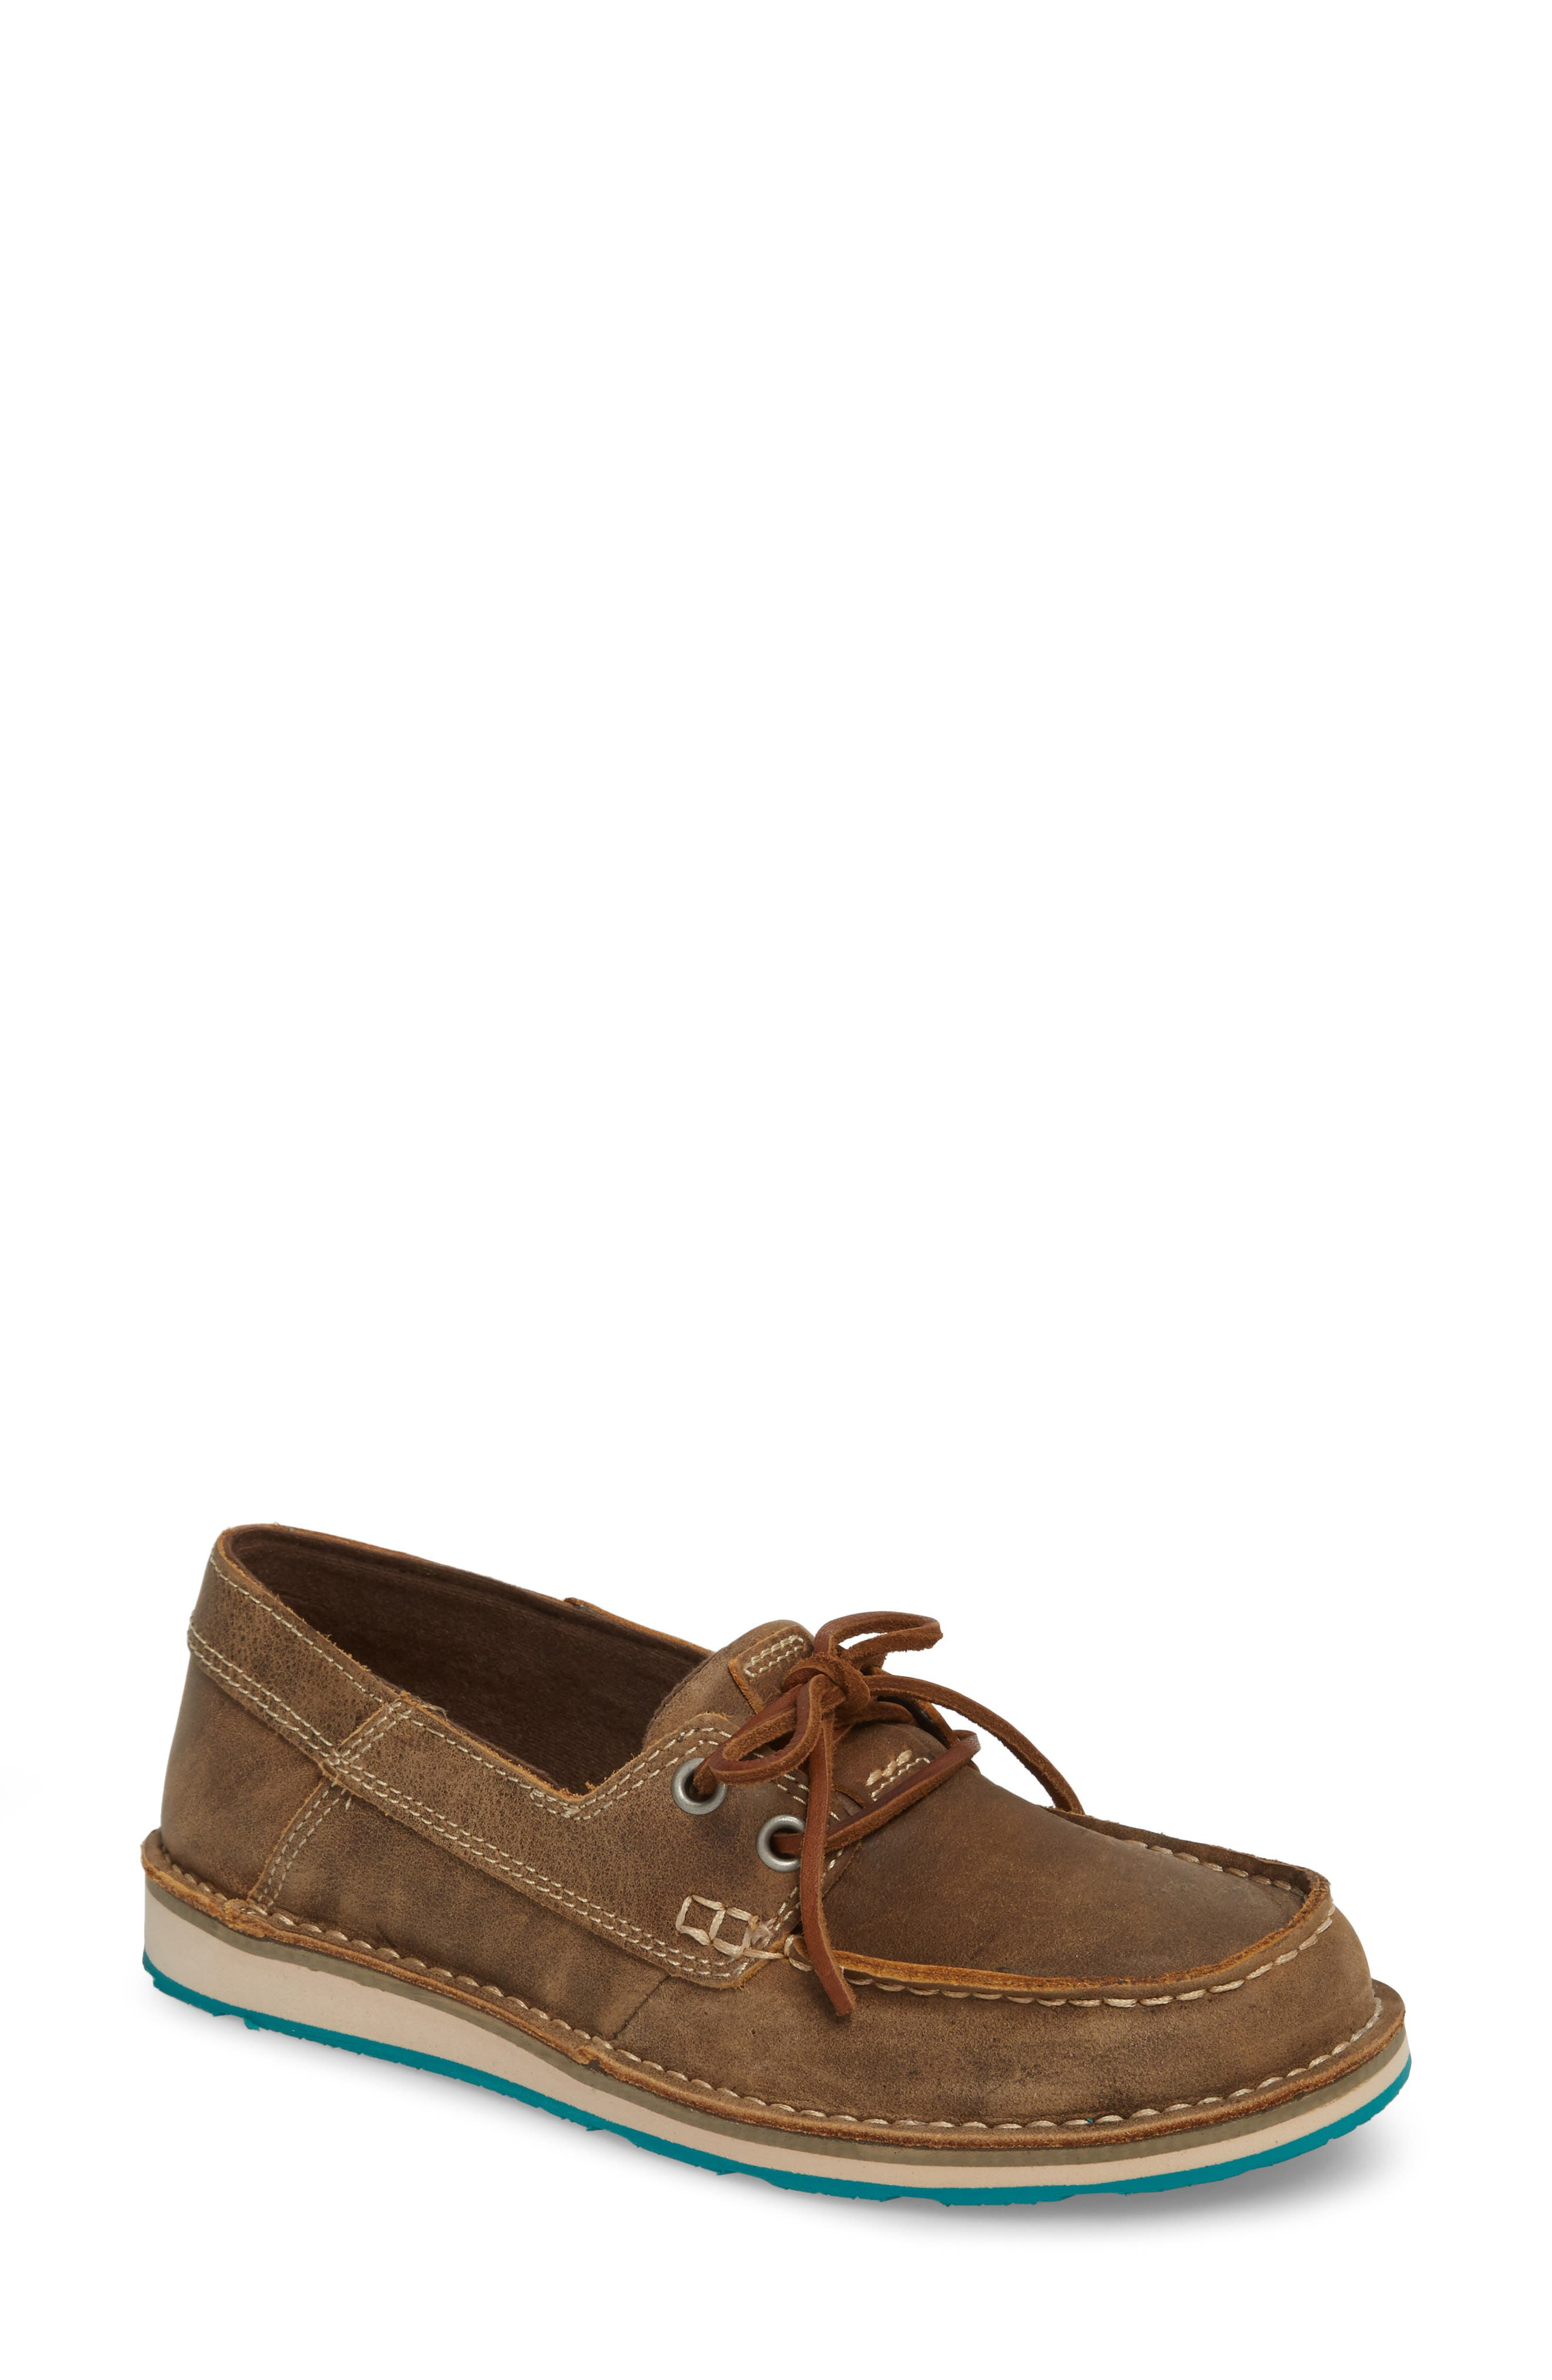 ARIAT Cruiser Castaway Loafer, Main, color, BROWN BOMBER LEATHER